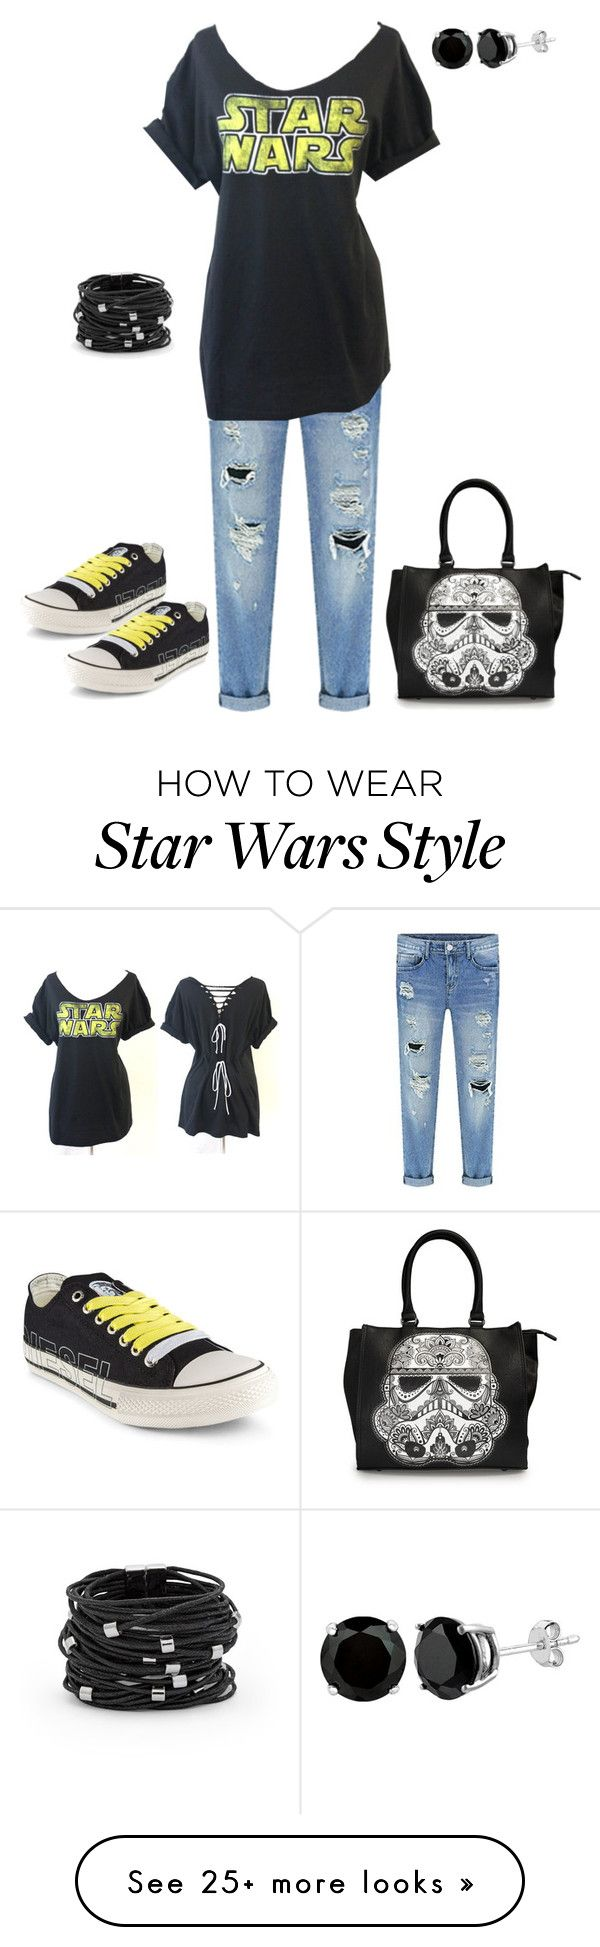 """Star Wars Caz"" by guliverlouise on Polyvore featuring Diesel, Loungefly and Chico's"